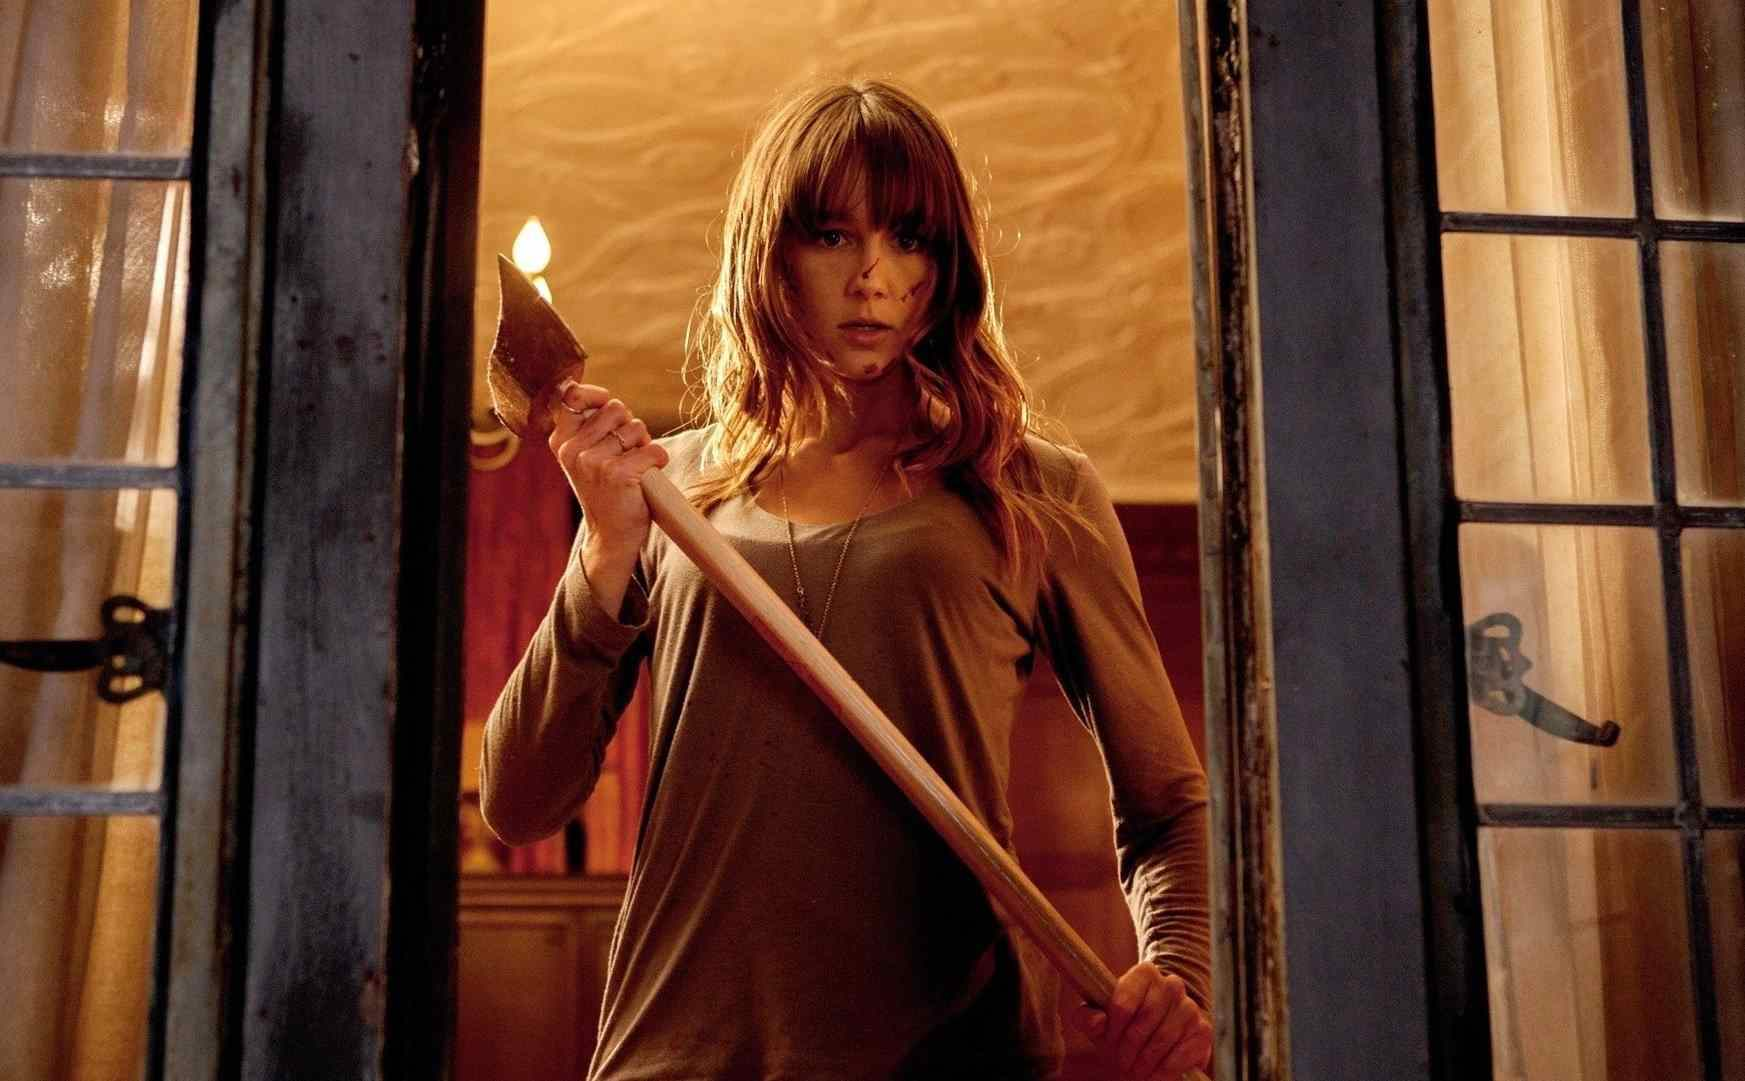 Erin holding an axe at the window in You're Next.